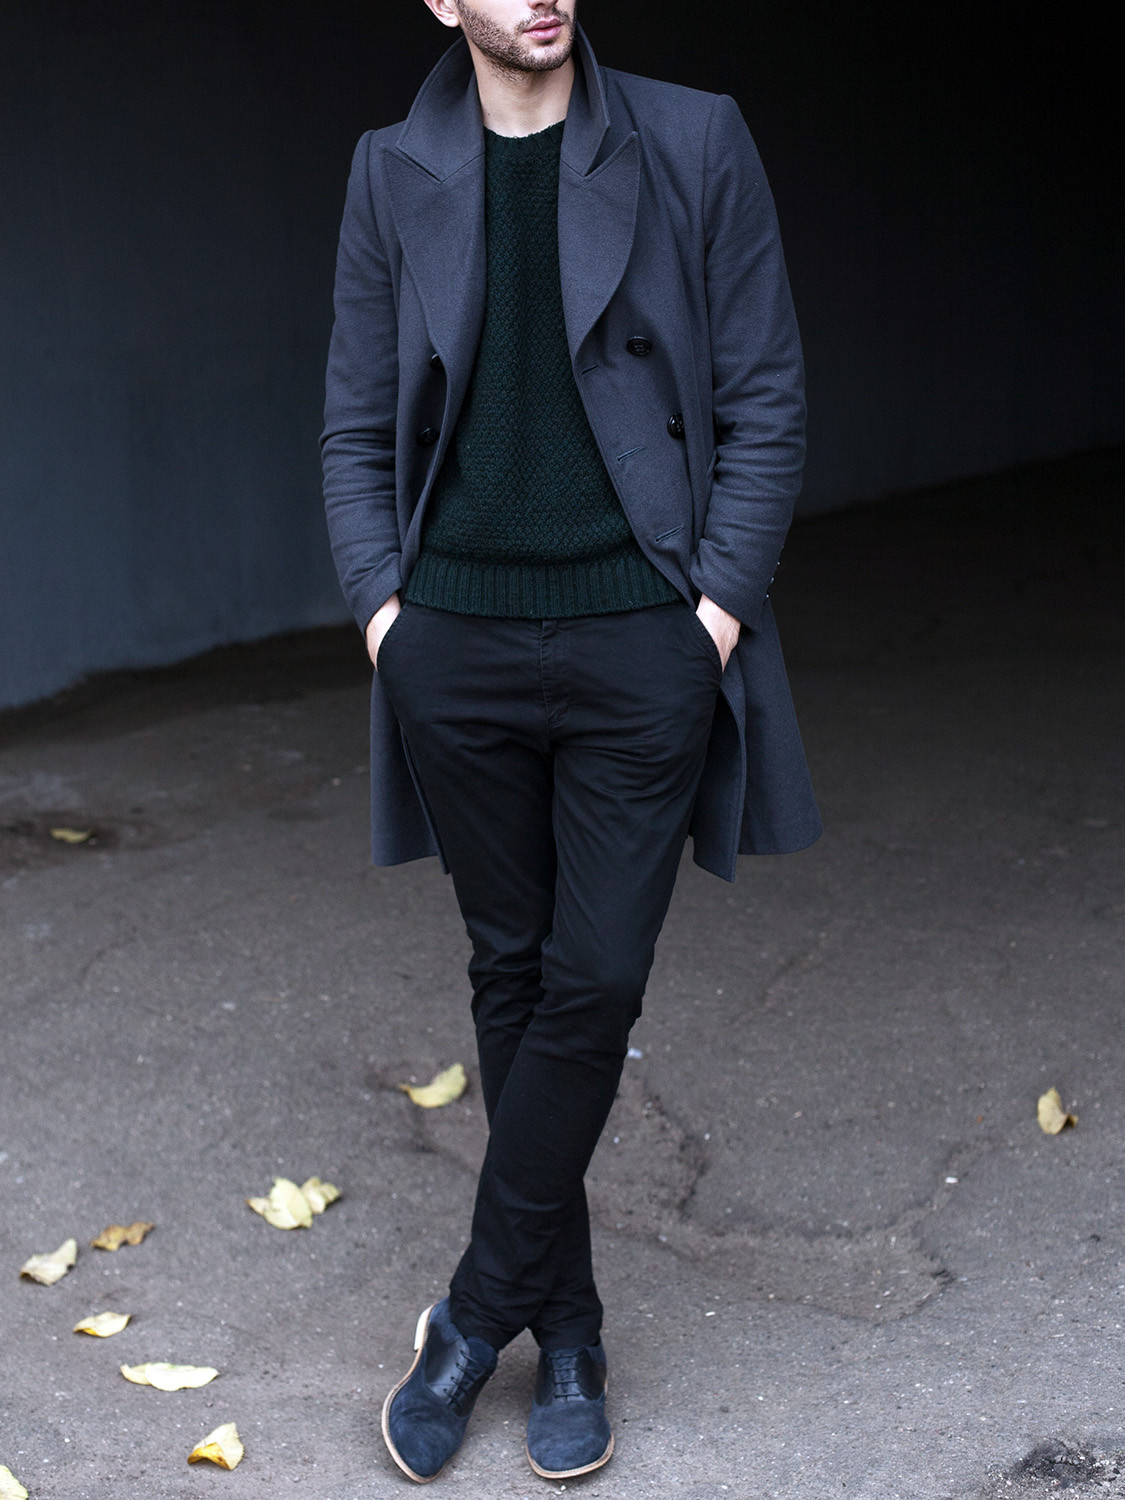 Men's outfit idea for 2021 with navy double-breasted overcoat, green plain crew neck knitted jumper, navy chinos, navy suede shoes / desert shoes. Suitable for autumn and winter.